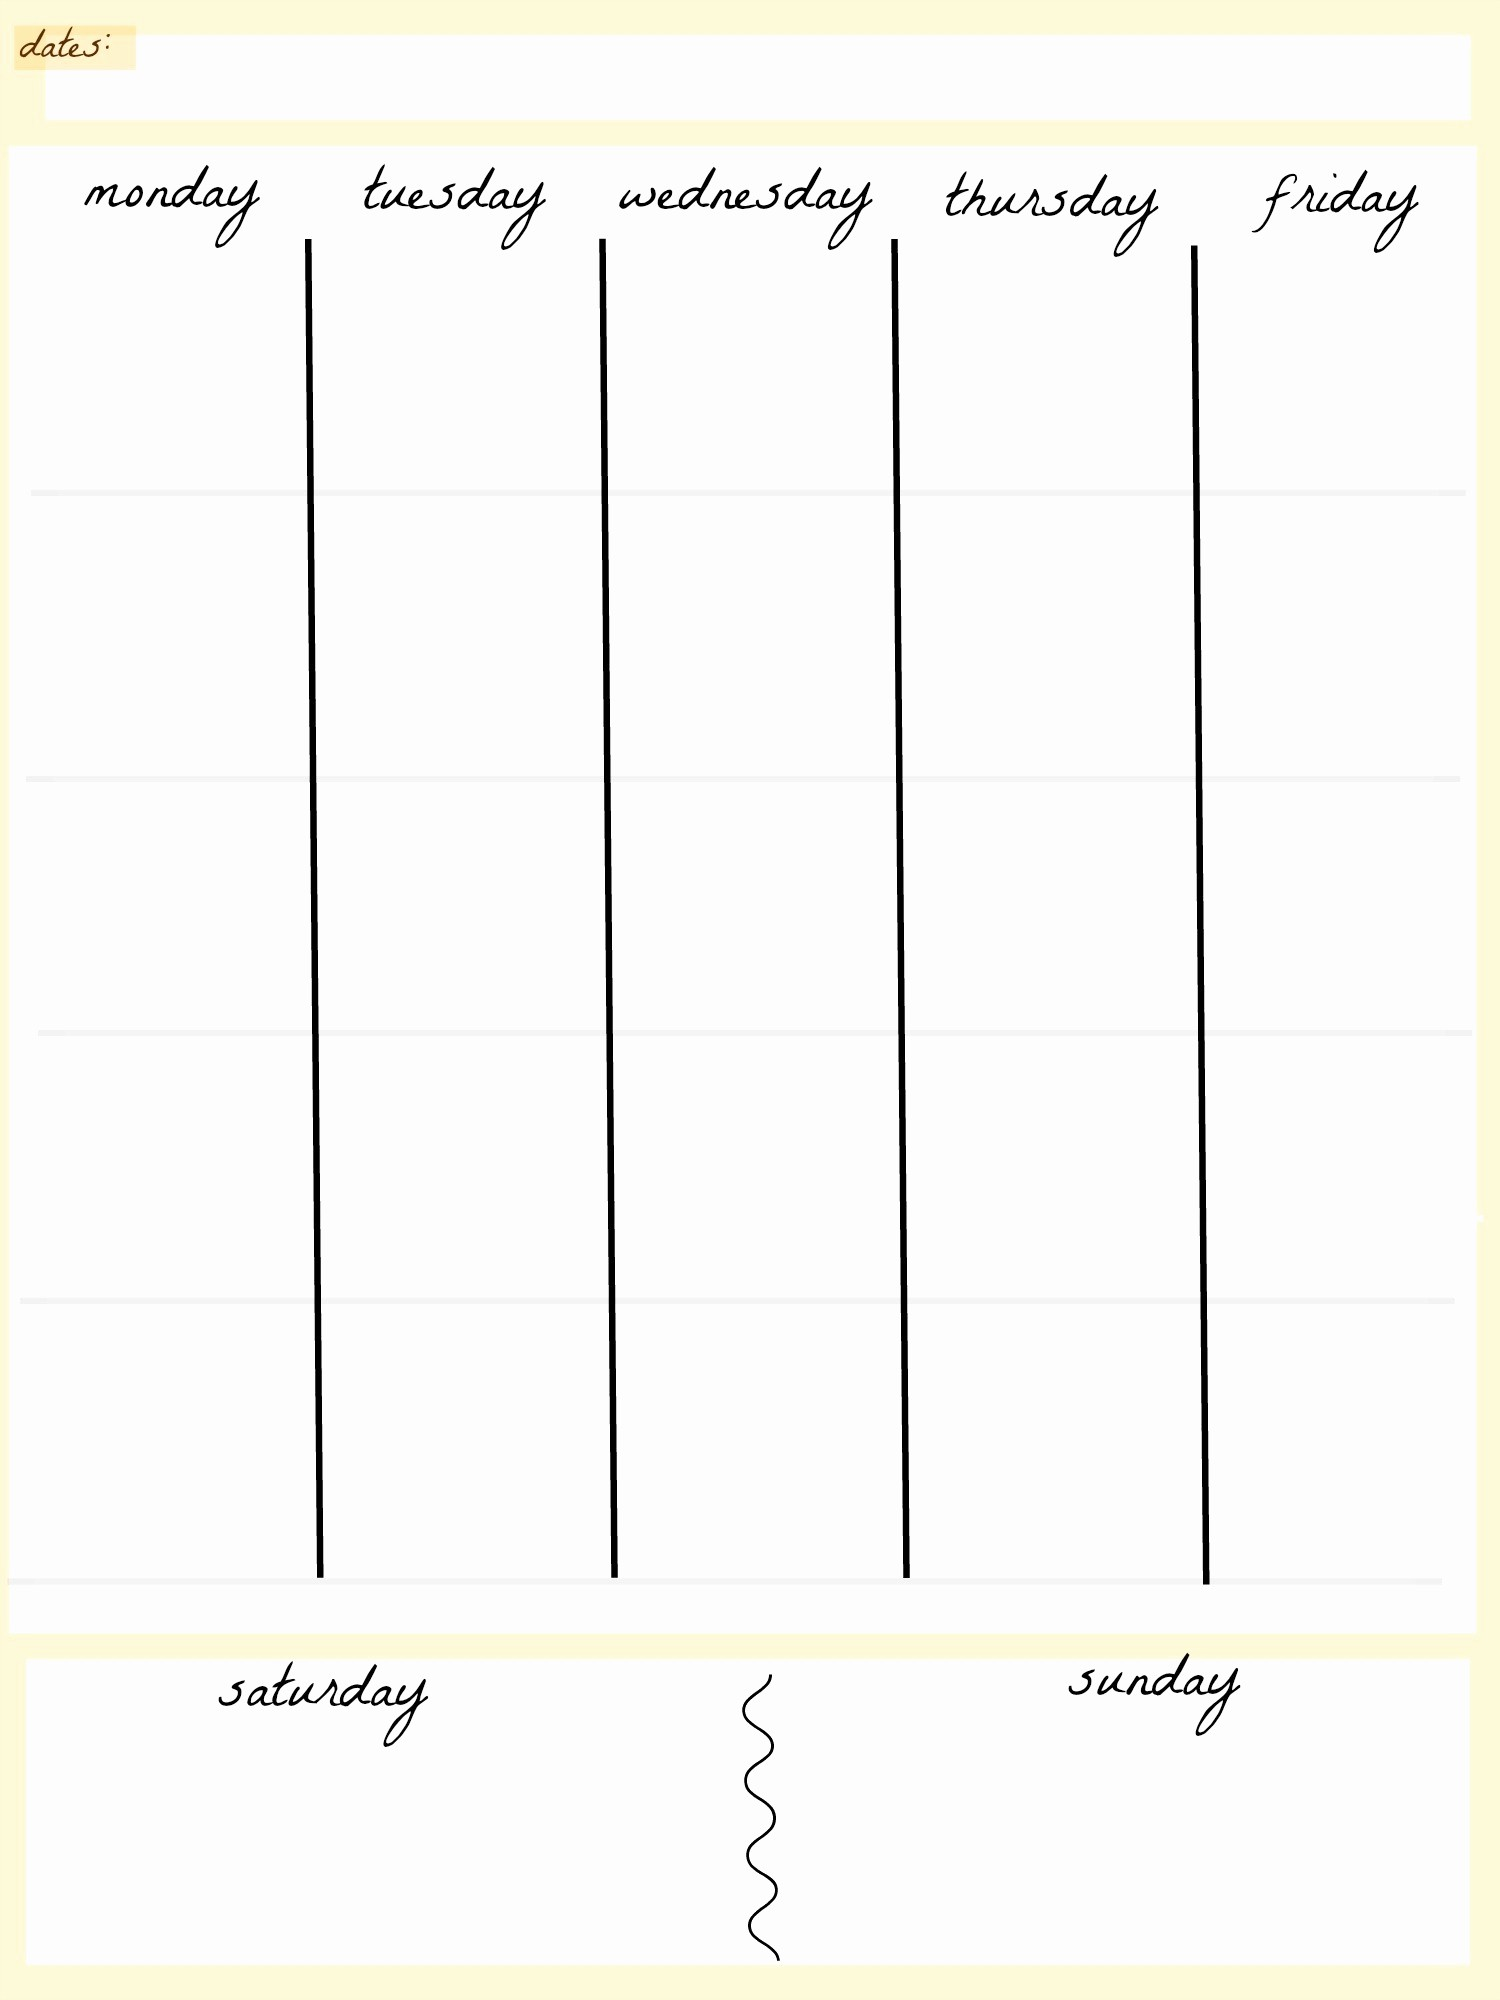 5 Day Weekly Calendar Template Elegant 5 Day Work Week Monthly Calendar Printable – Calendar